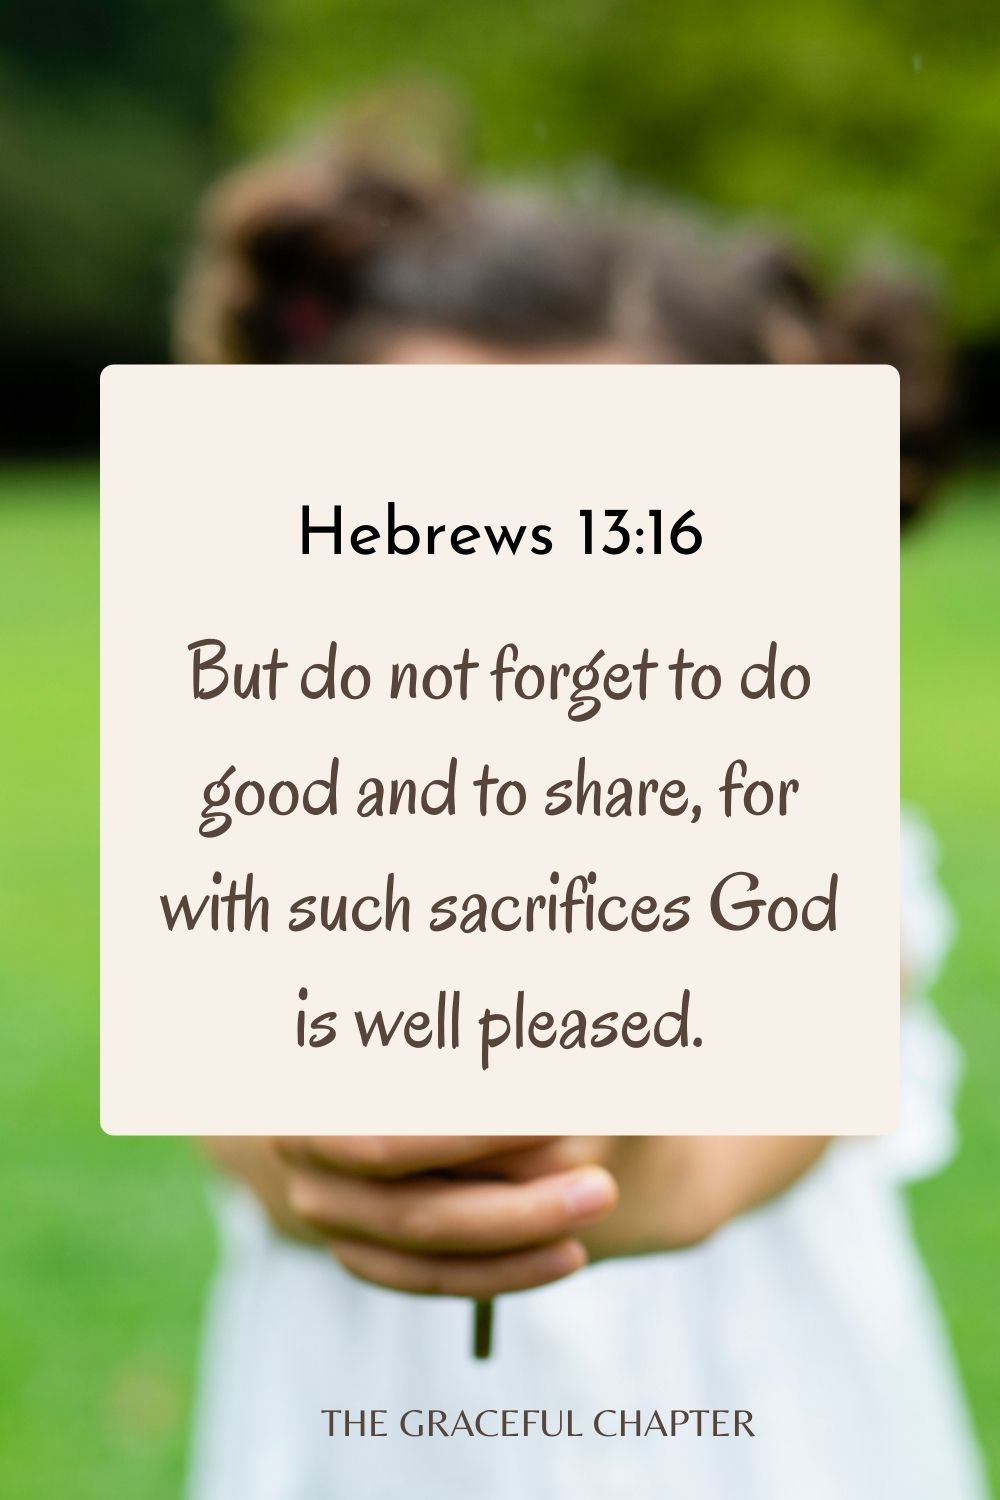 But do not forget to do good and to share, for with such sacrifices God is well pleased. Hebrews 13:16